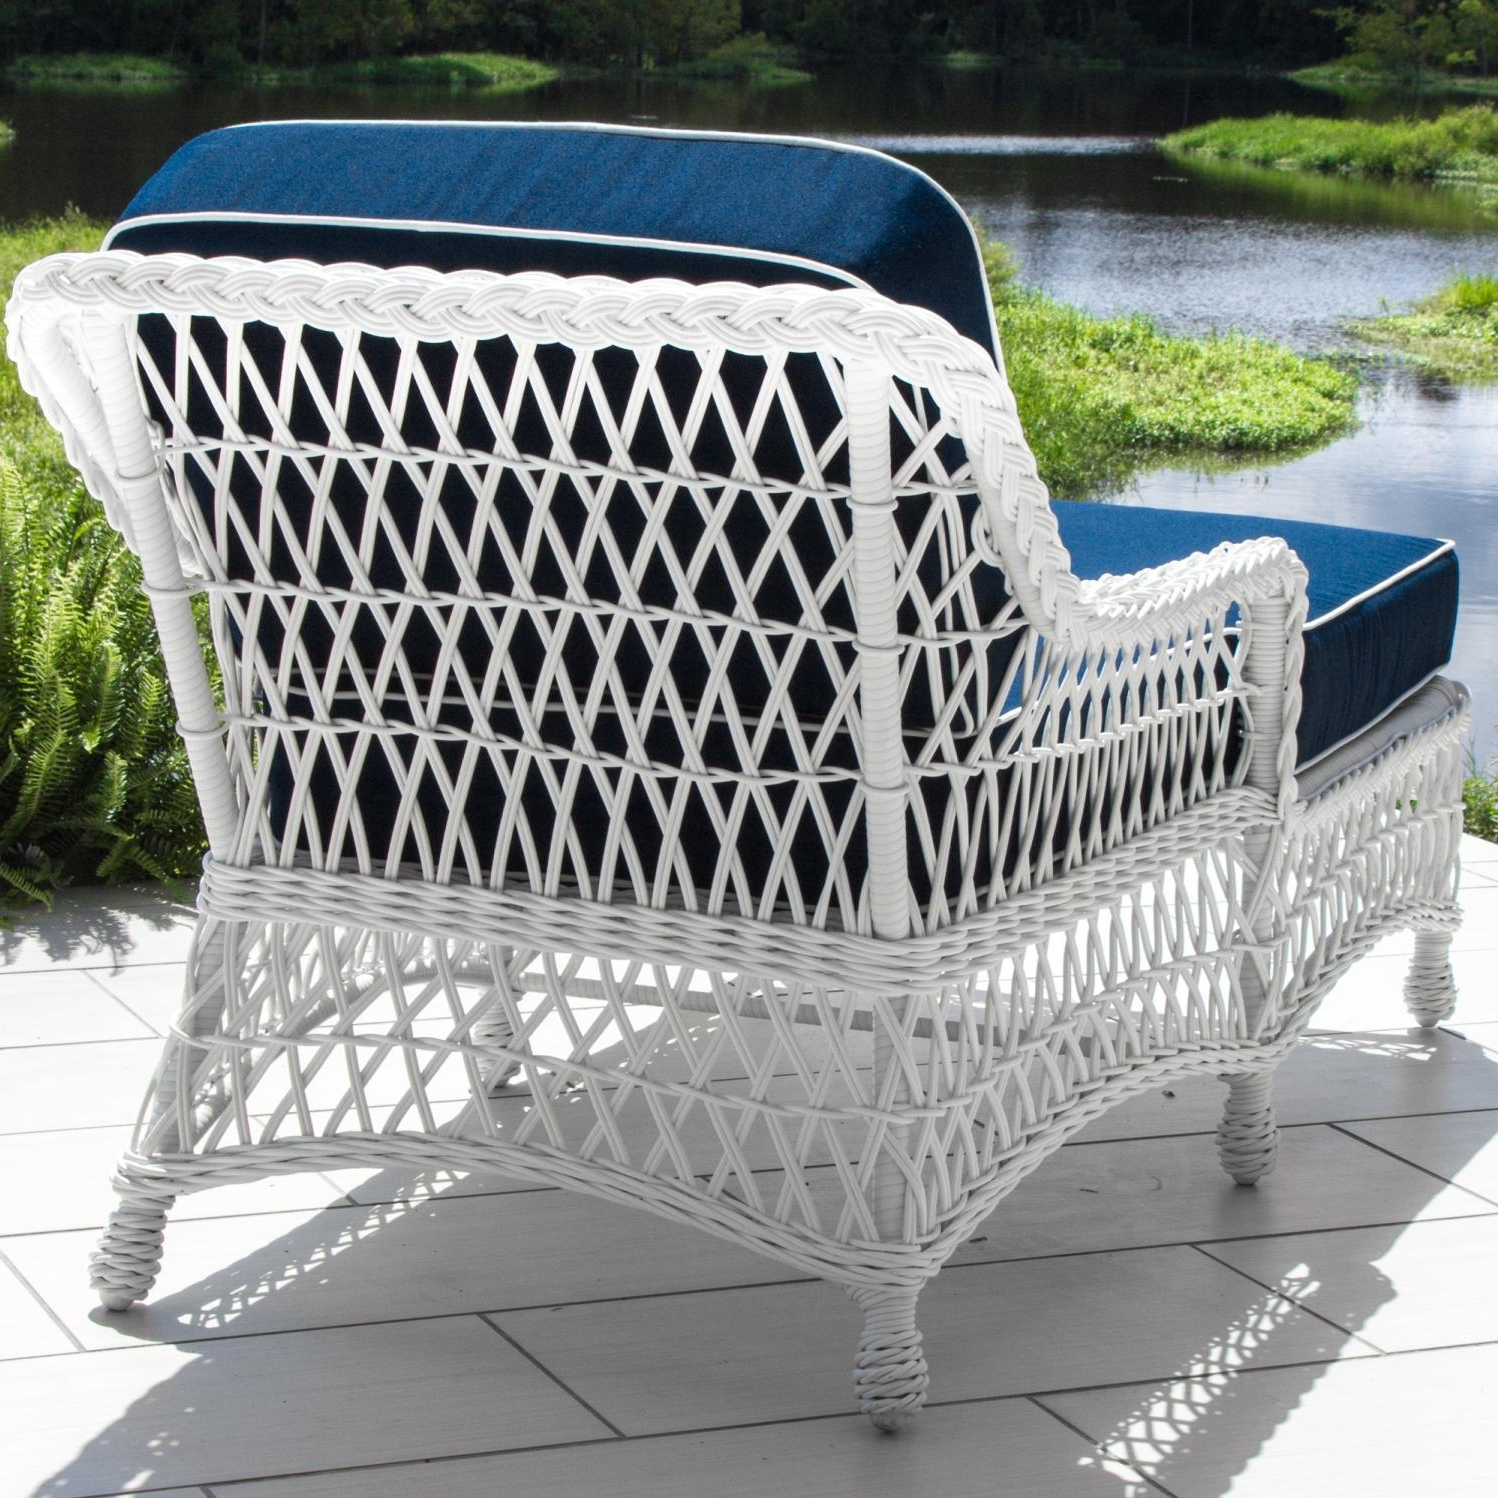 Everglades White Resin Wicker Patio Chaise Loungelakeview Intended For Well Known White Wicker Chaise Lounges (View 2 of 15)